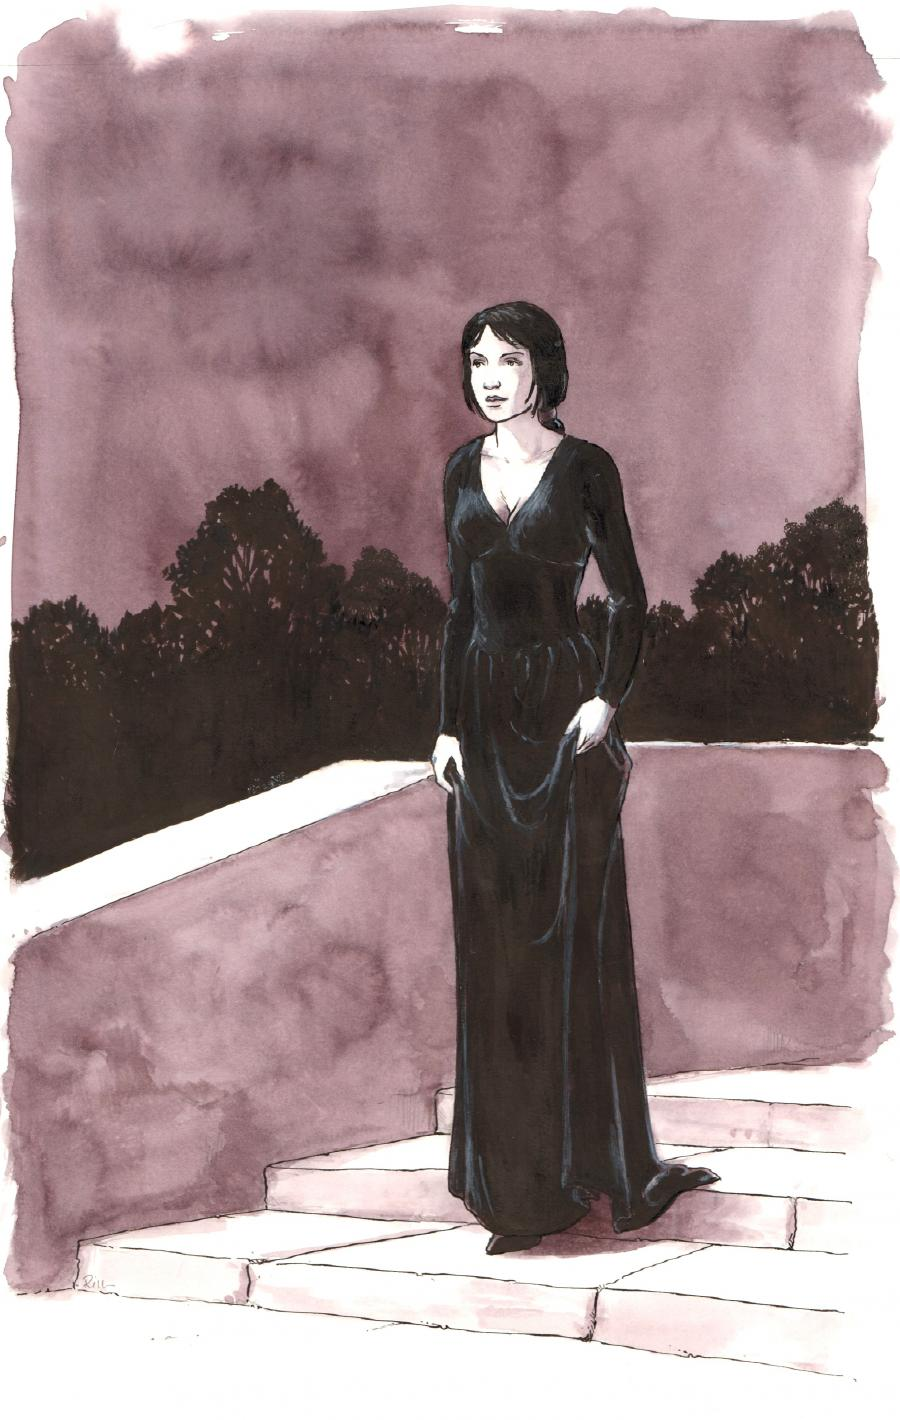 Illustration originale - Femme en noir - par Michel RIU